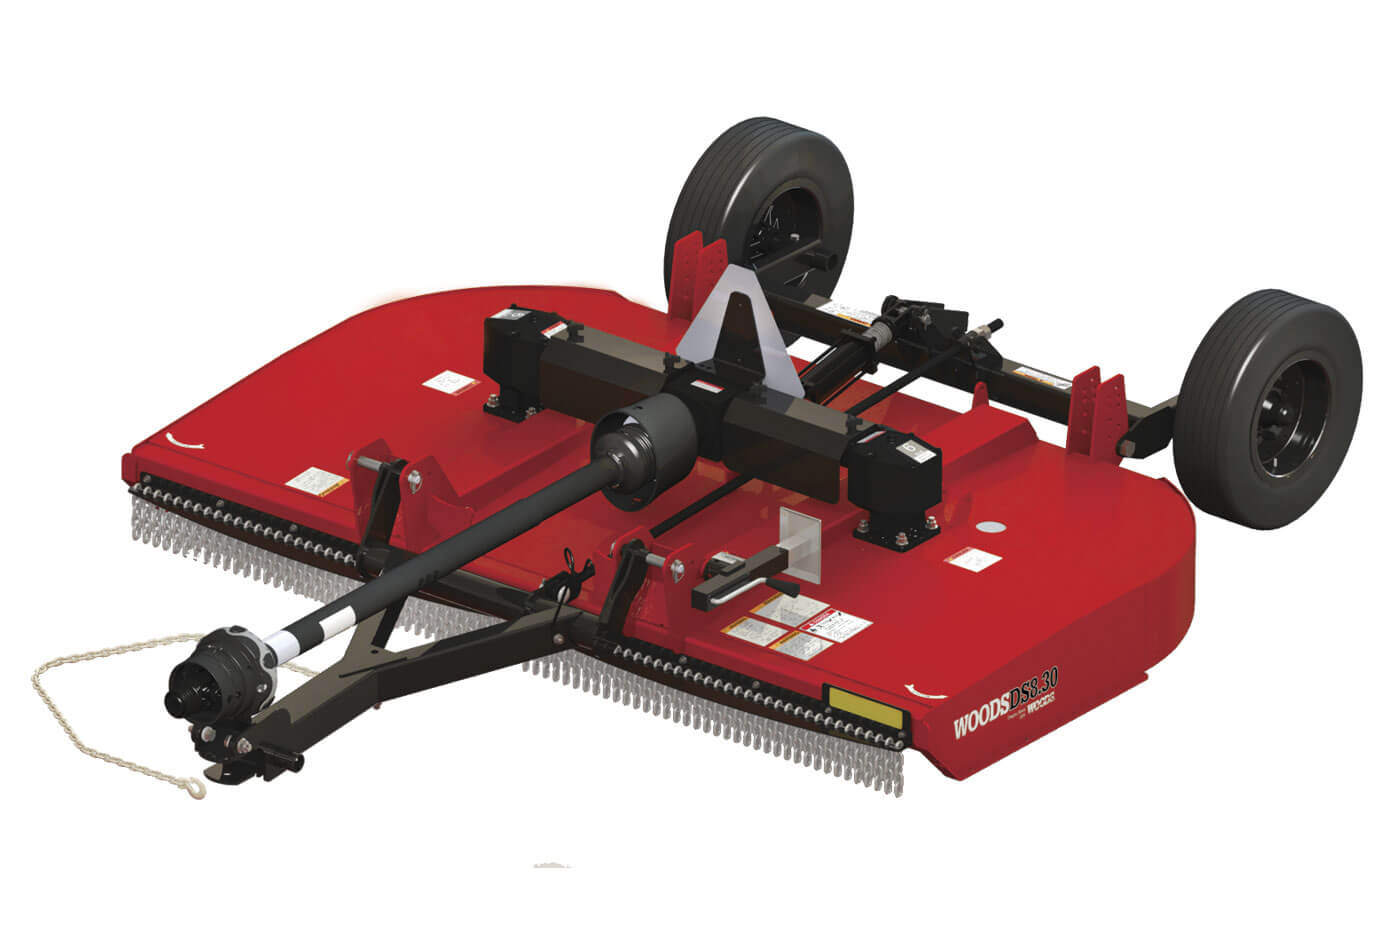 Multi-Spindle Rotary Cutters, woods